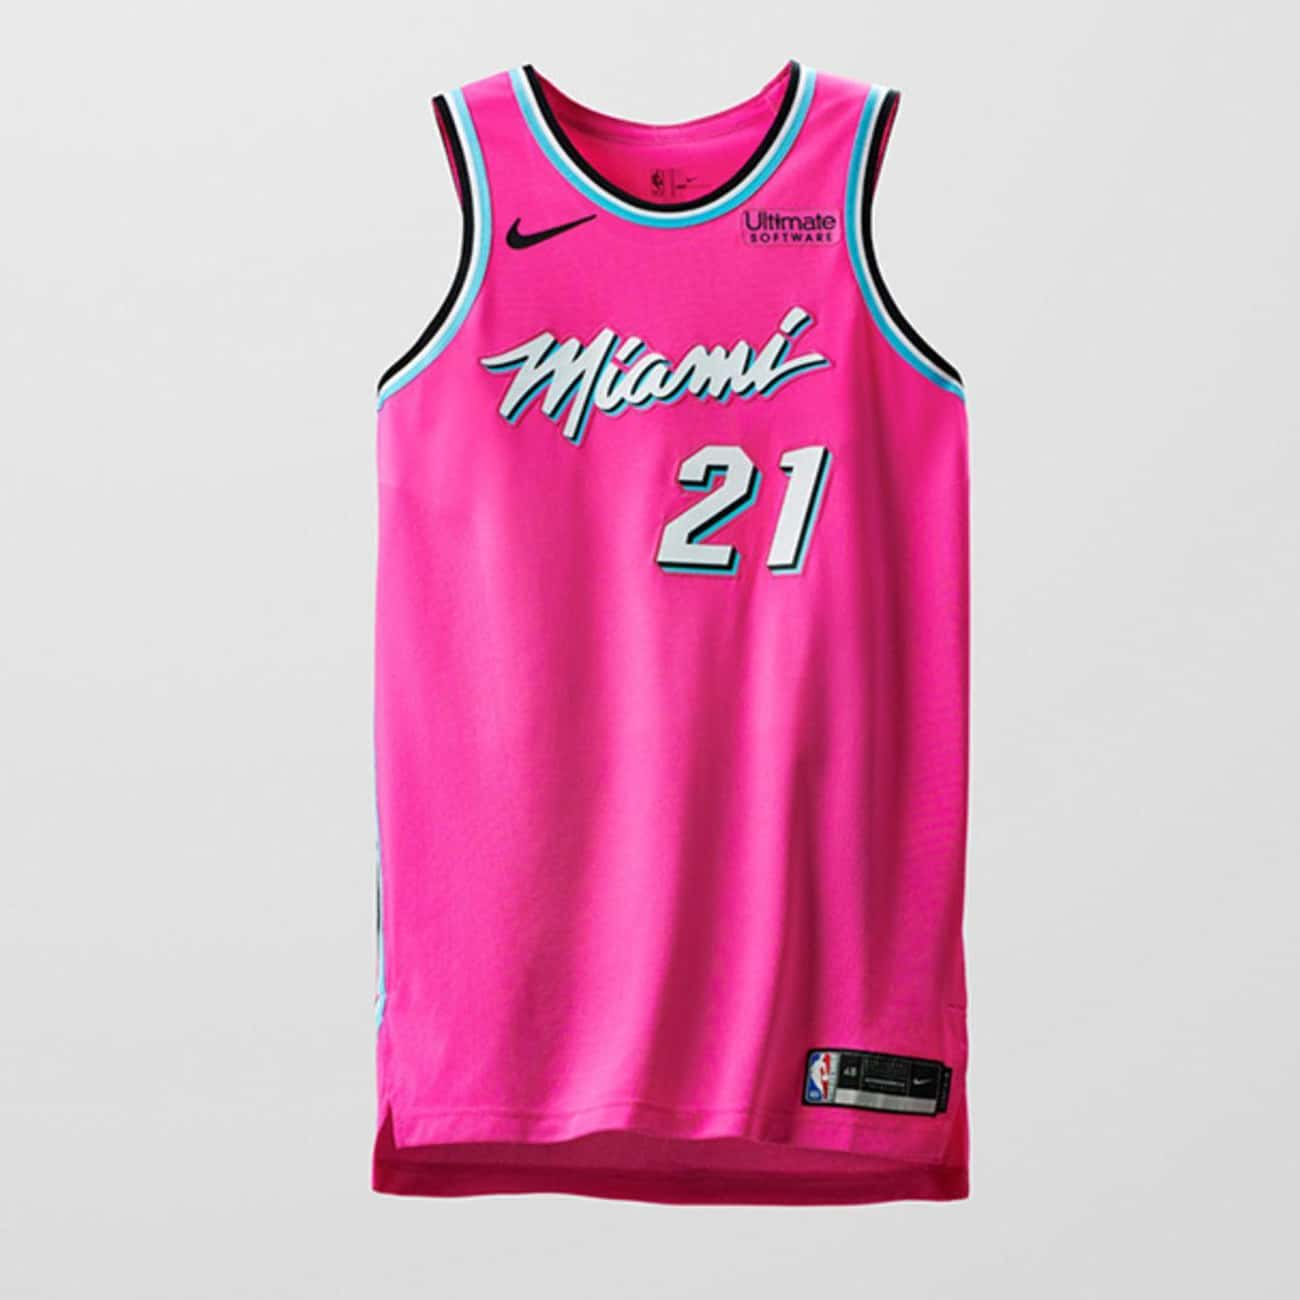 """Miami Heat is listed (or ranked) 3 on the list The Coolest NBA """"Earned Edition"""" Jerseys"""